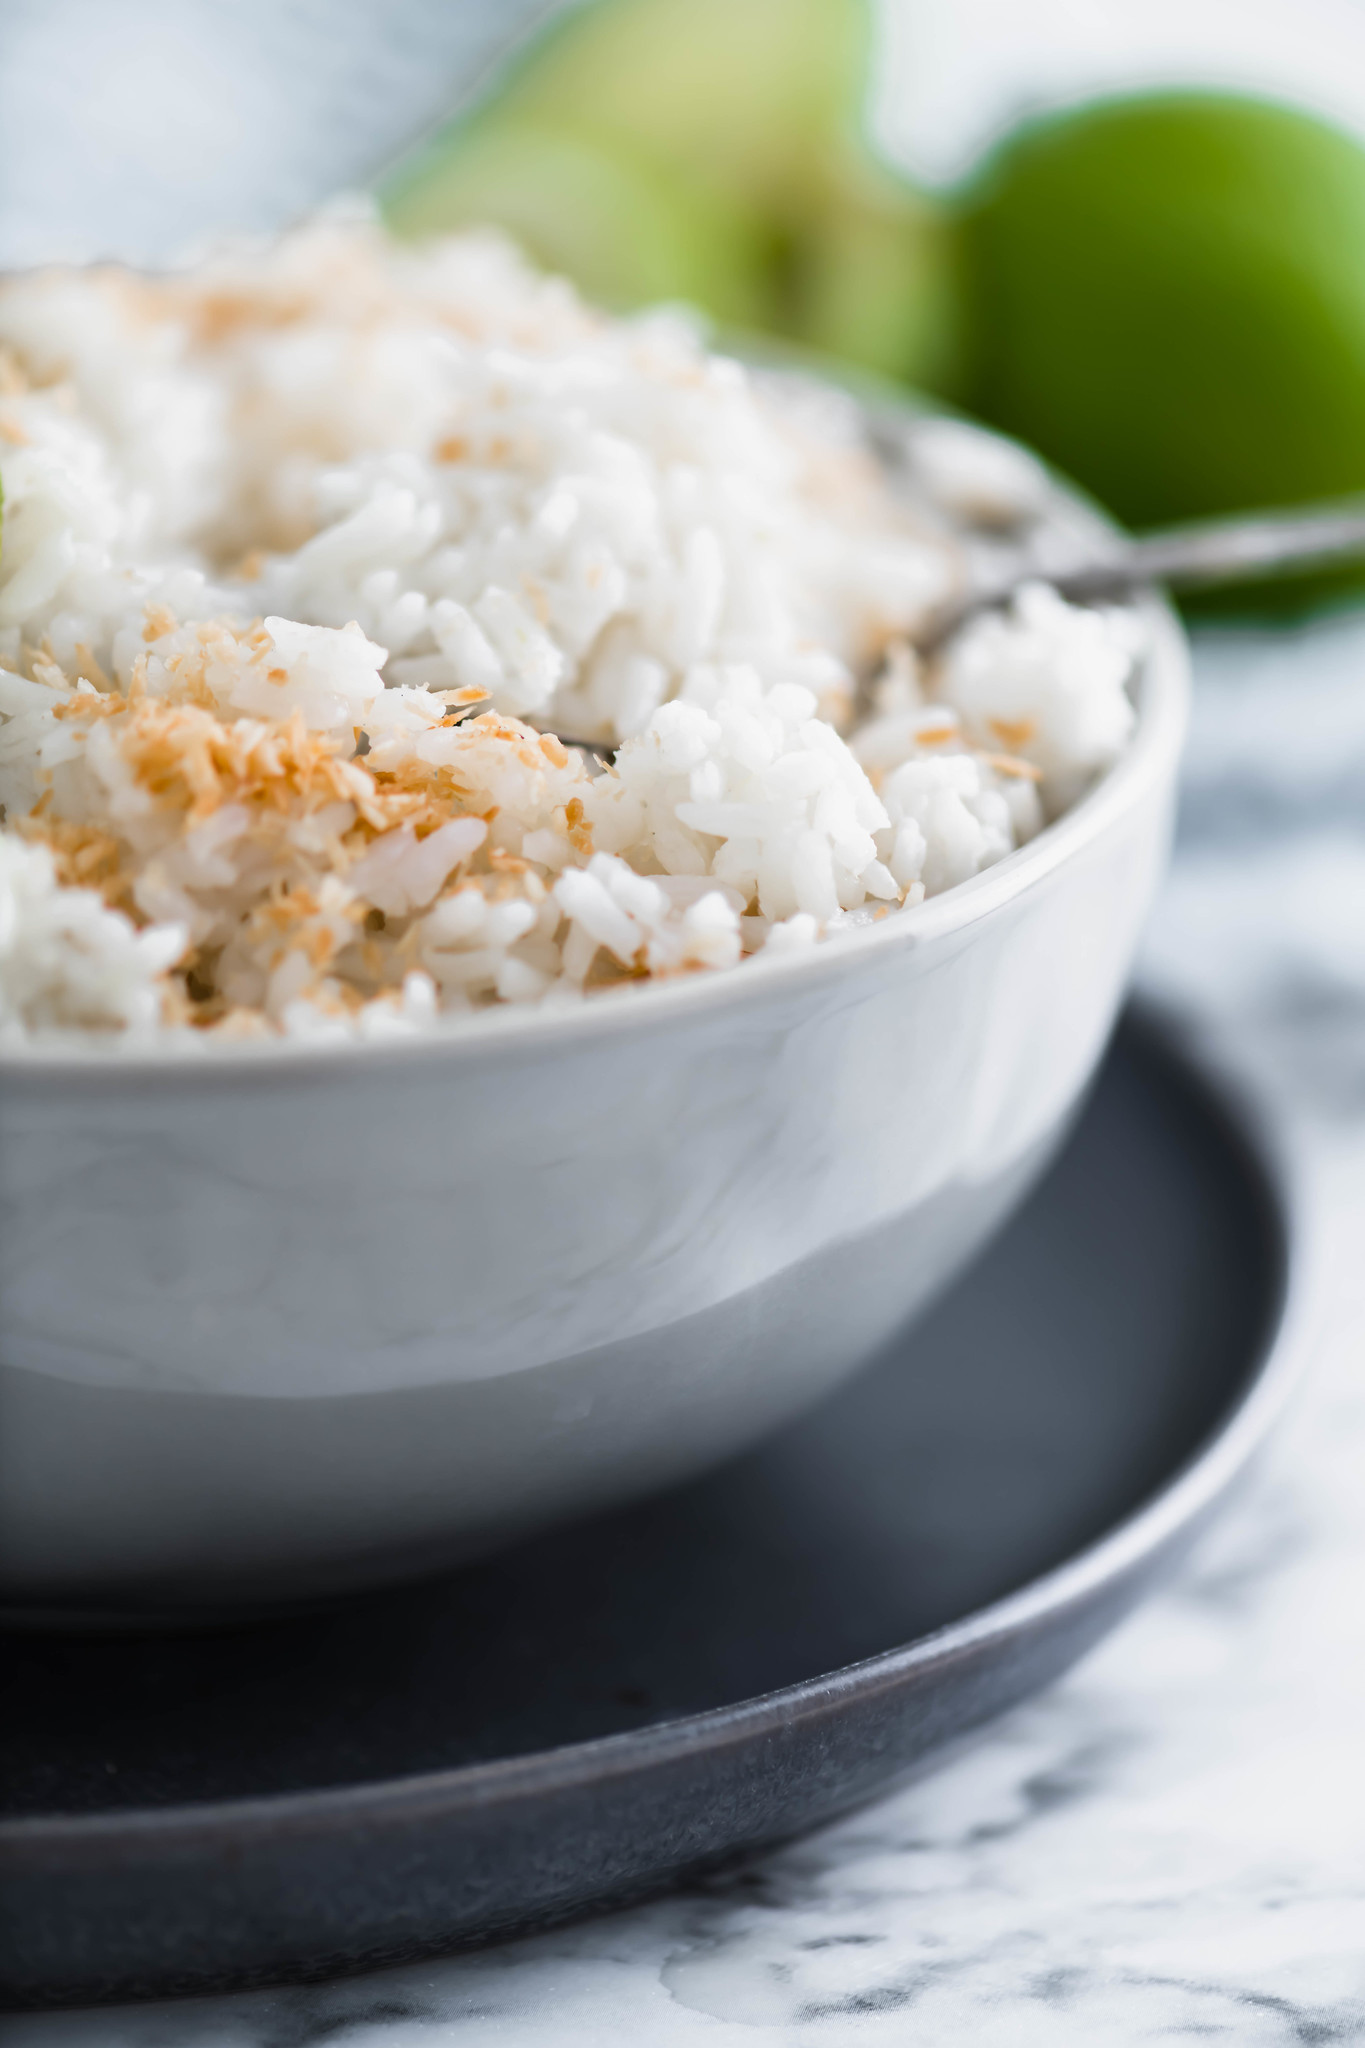 The Instant Pot obsession continues with this Instant Pot Coconut Lime Rice. Ridiculously easy to make and packed full of tropical flavor.